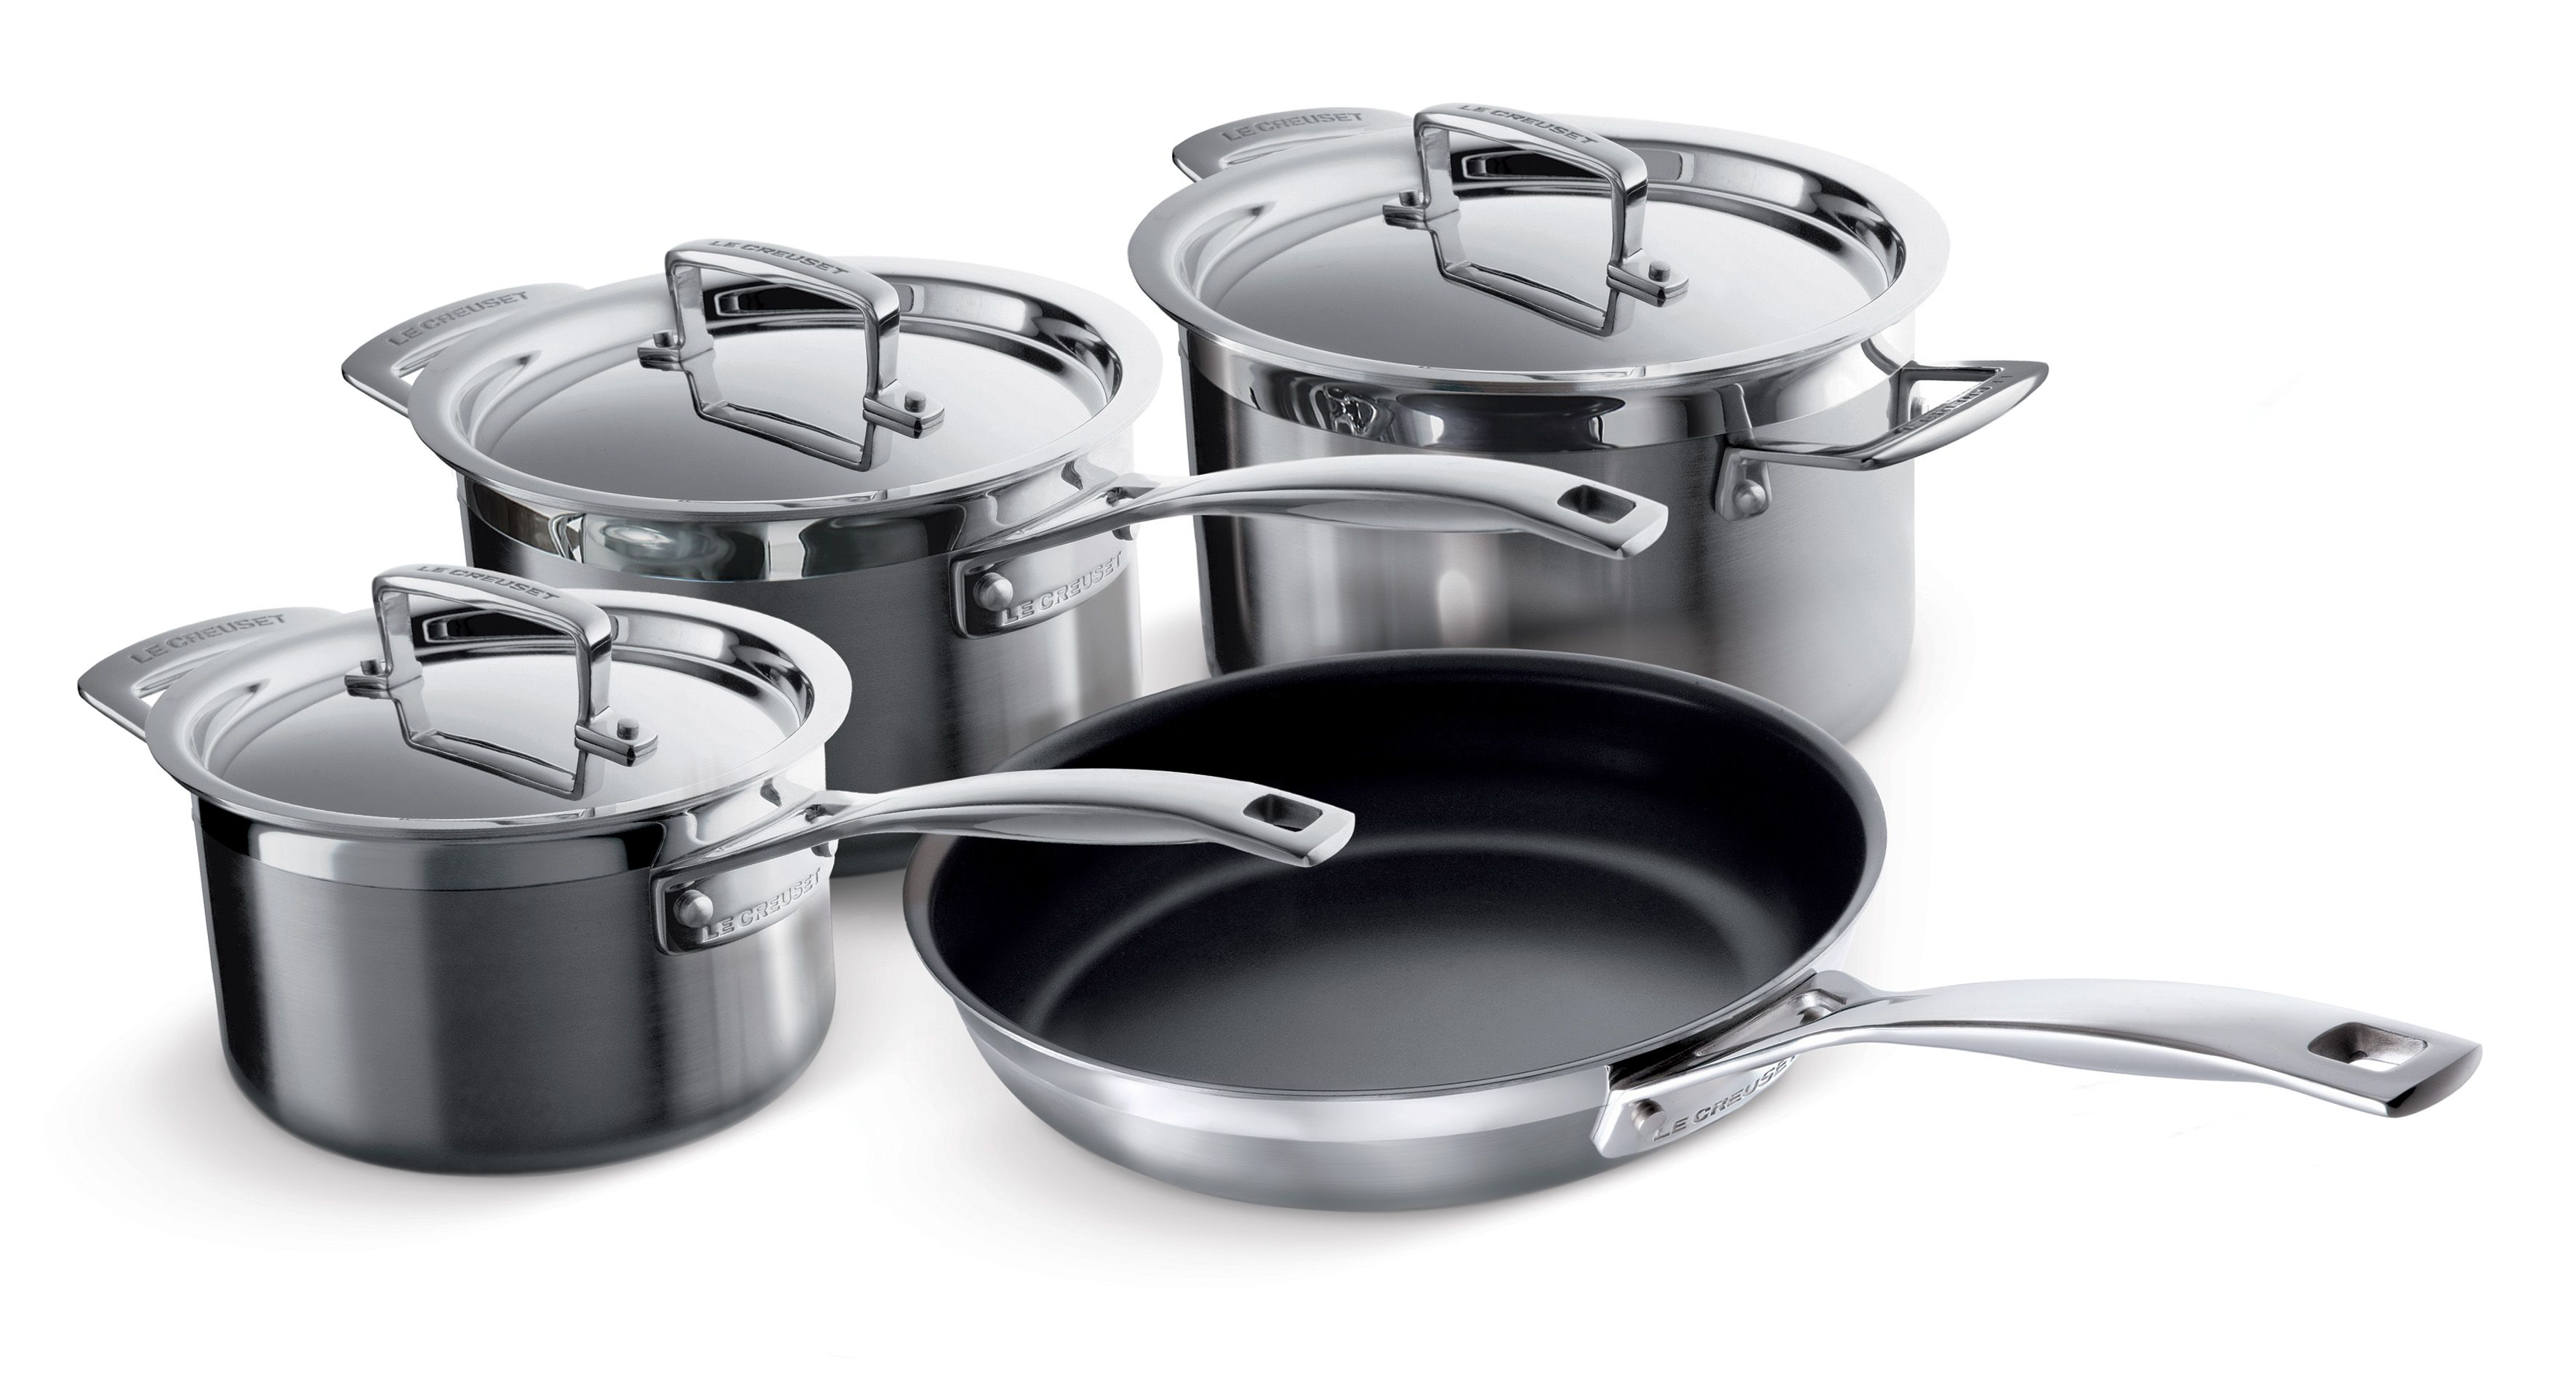 Le Creuset 3-Ply Stainless Steel 4 Piece Pan Set